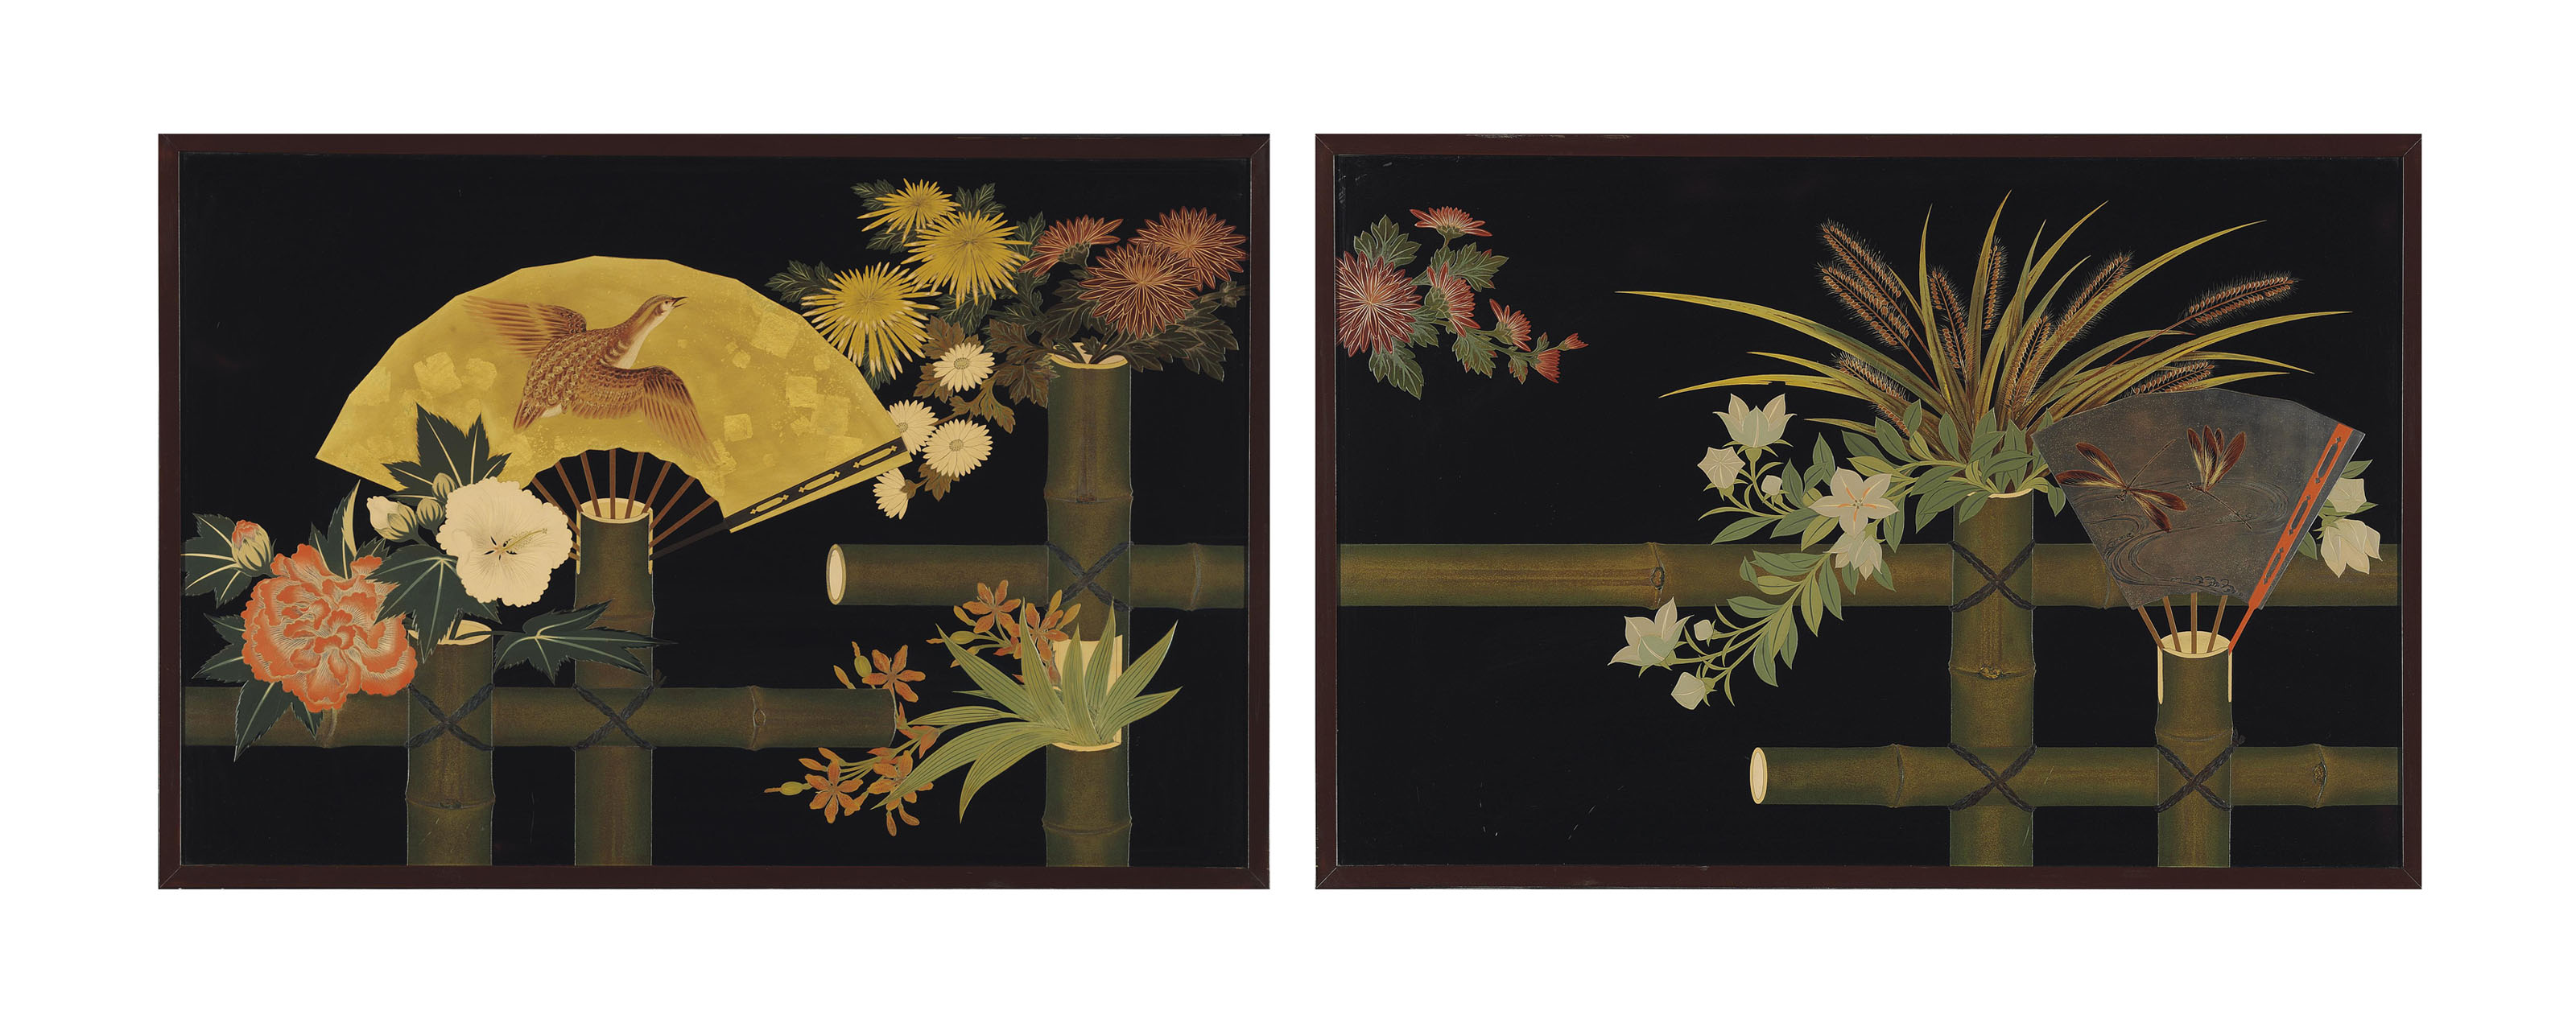 A small two-panel lacquer scre